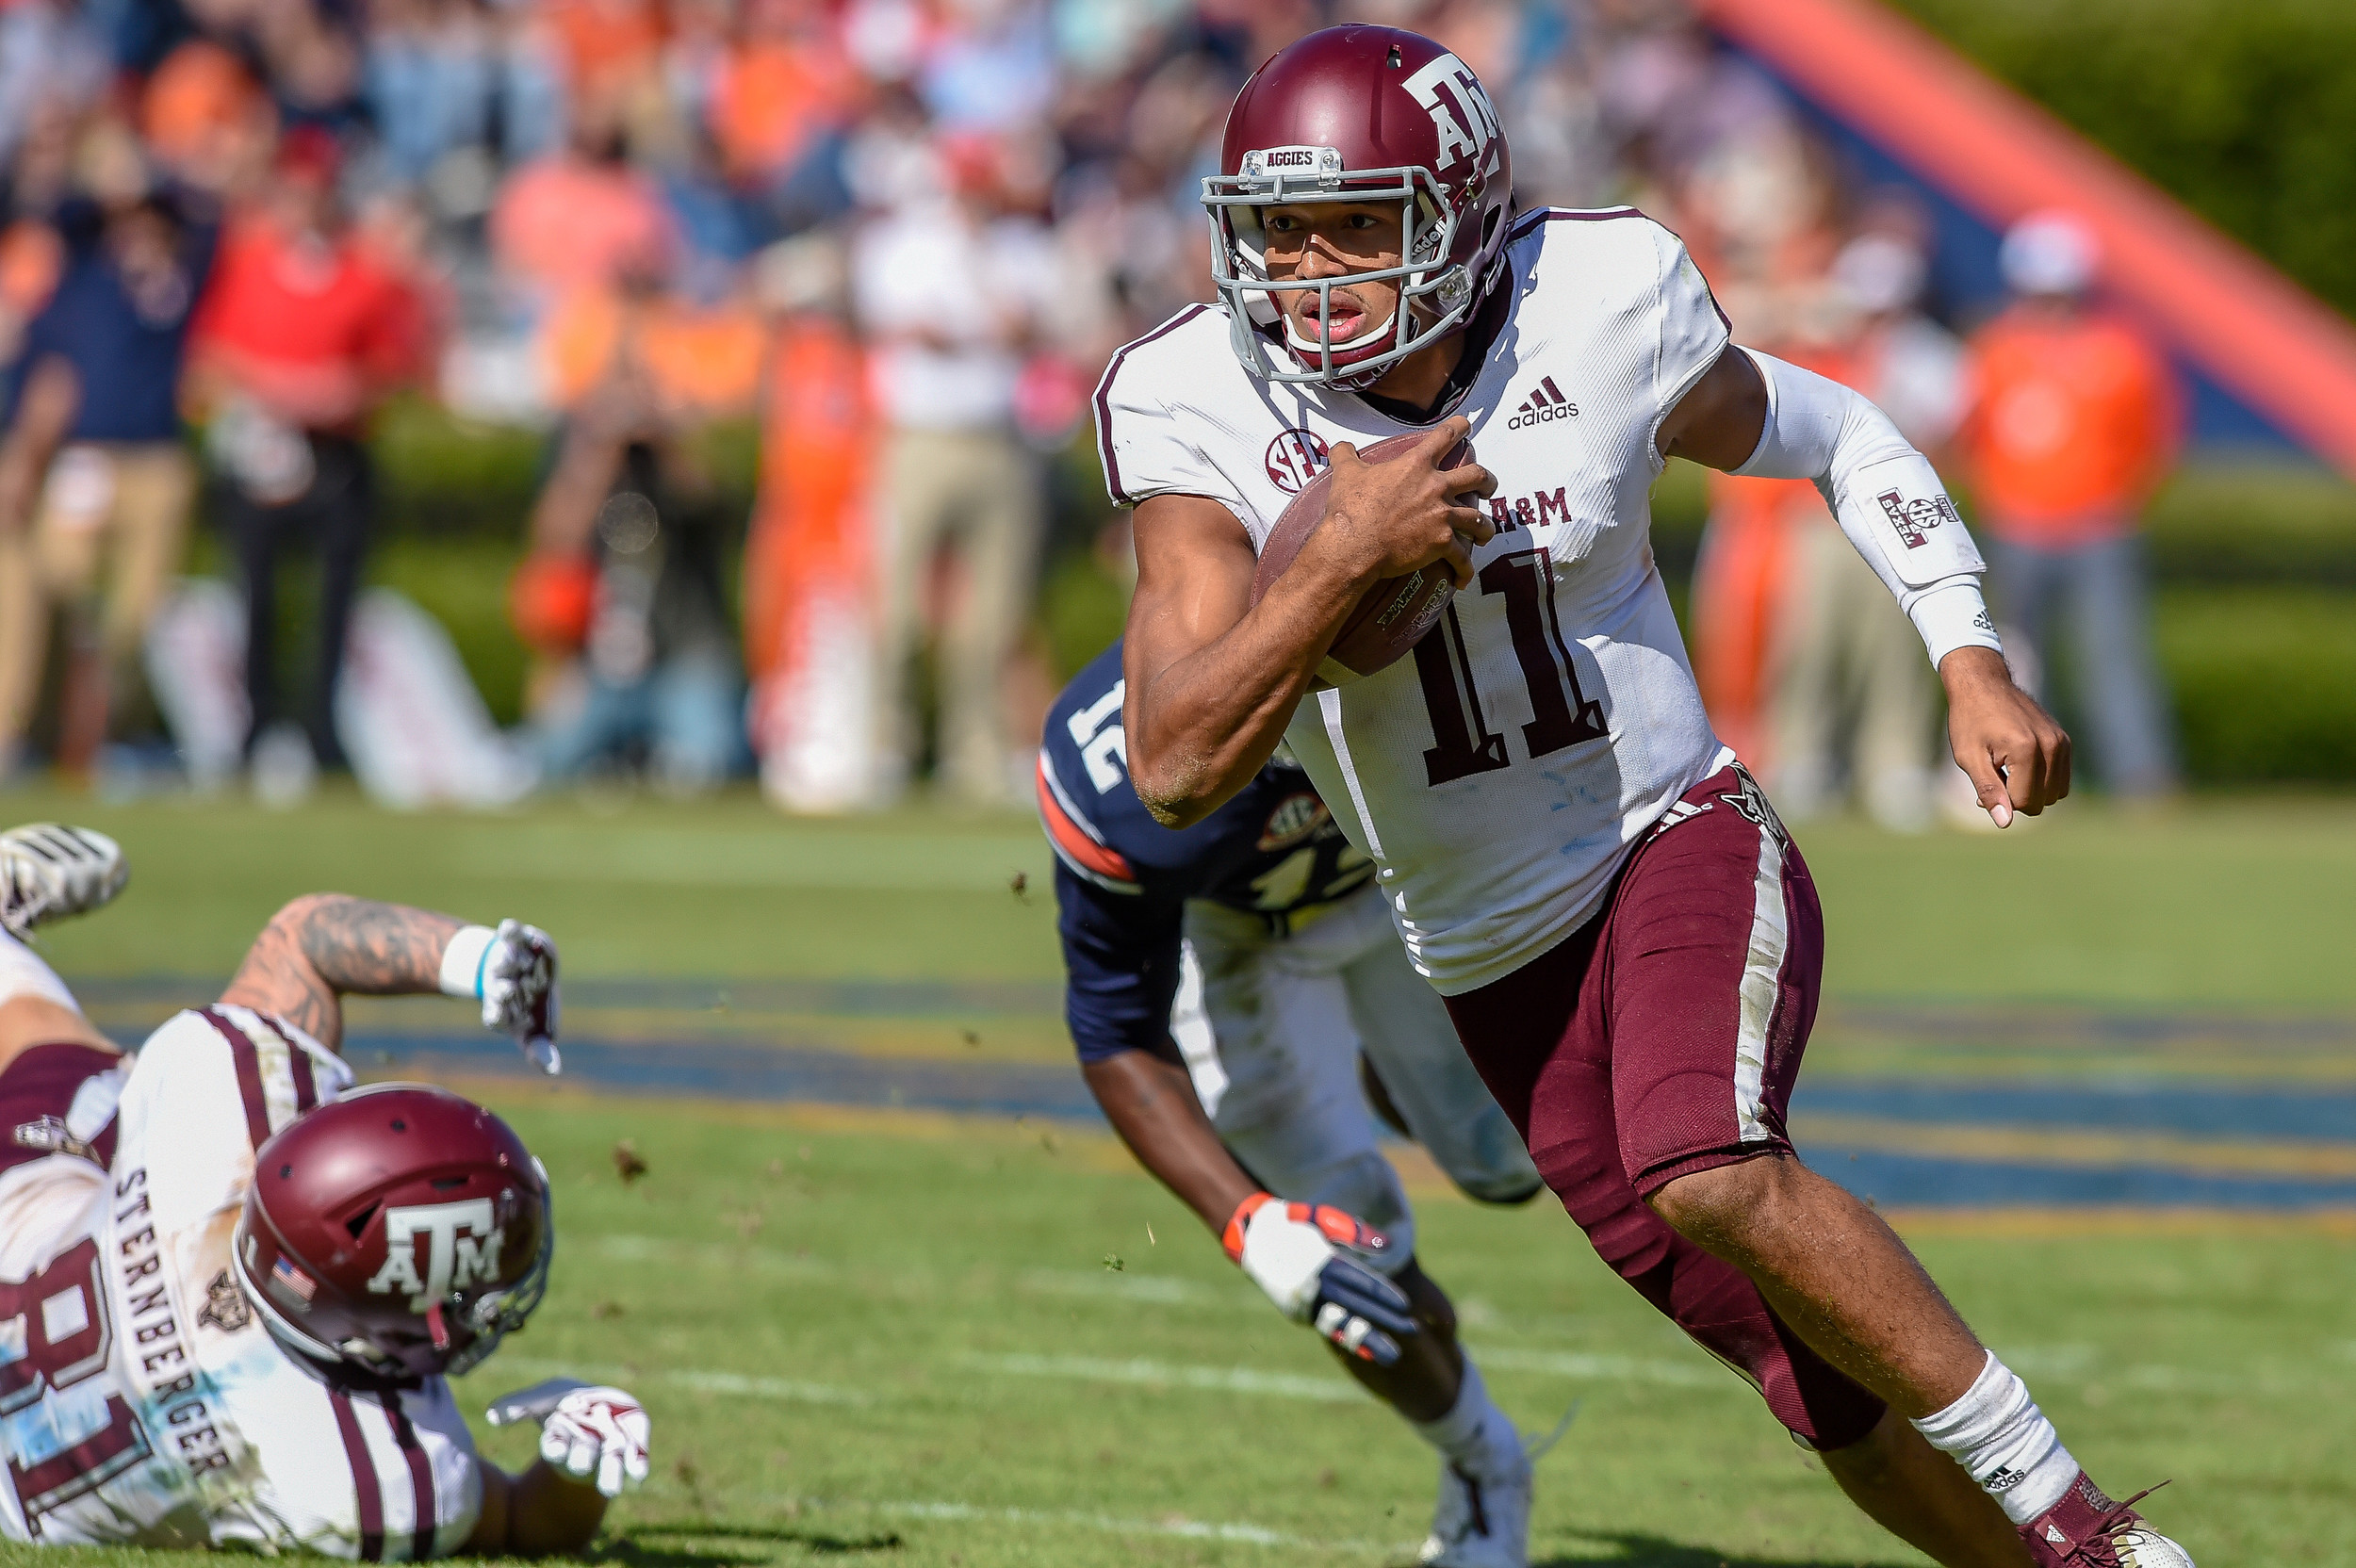 Texas A&M Aggies quarterback Kellen Mond (11) runs during the second half of an NCAA football game against the Texas A&M Aggies Saturday, November 3, 2018, at Jordan-Hare Stadium in Auburn, Ala. (Photo by Jeff Johnsey)